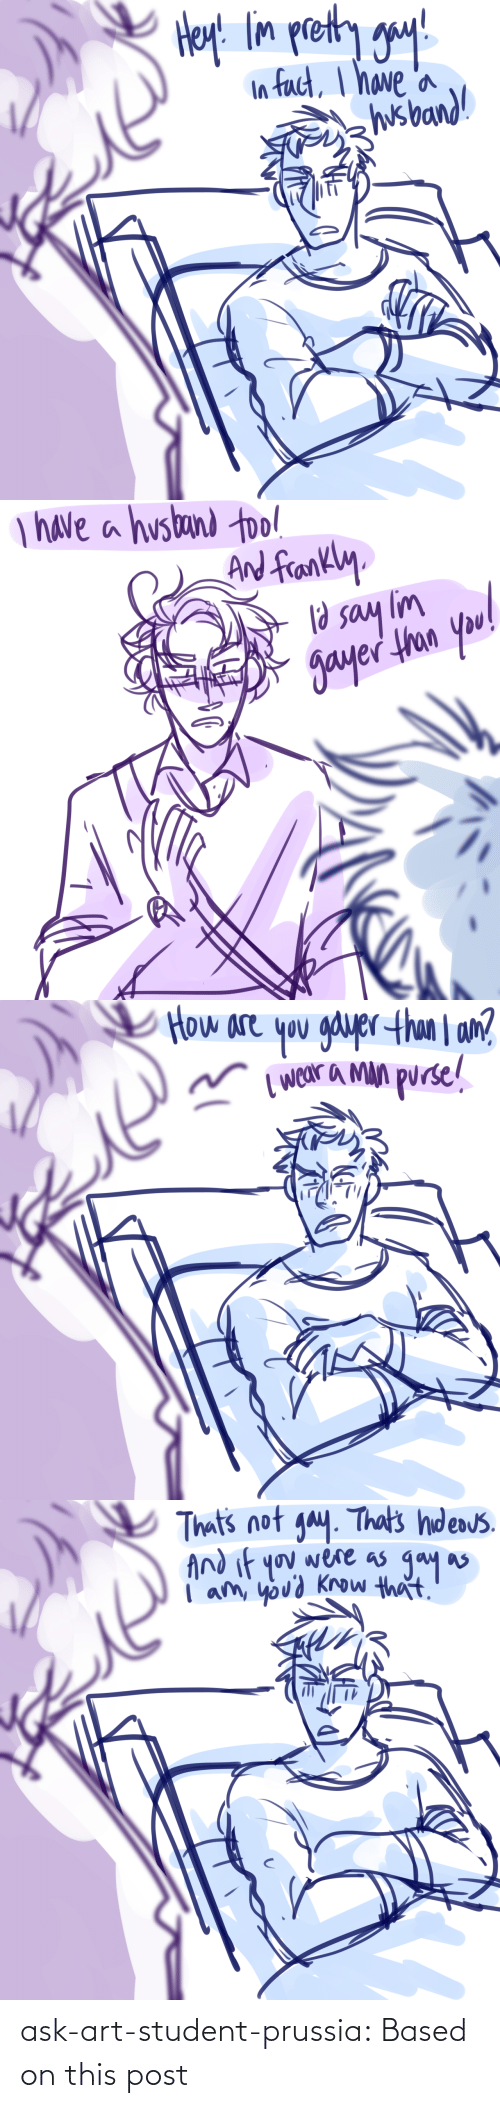 art: ask-art-student-prussia:  Based on this post